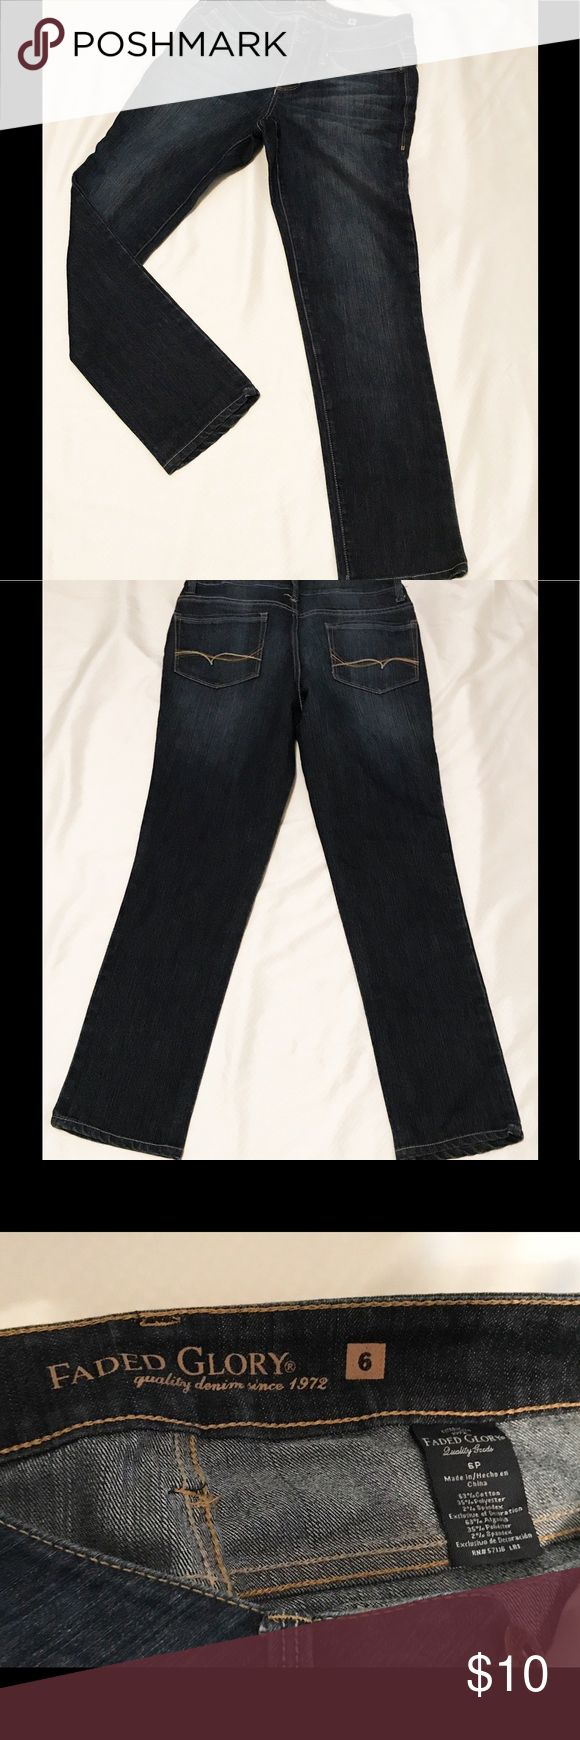 Women's Faded Glory jeans Women's Faded Glory jeans. EUC with no stains or tears. Size 6. Cotton, polyester, spandex blend for a comfortable fit. Easy care machine wash and dry. All reasonable offers welcome. Faded Glory Jeans Straight Leg